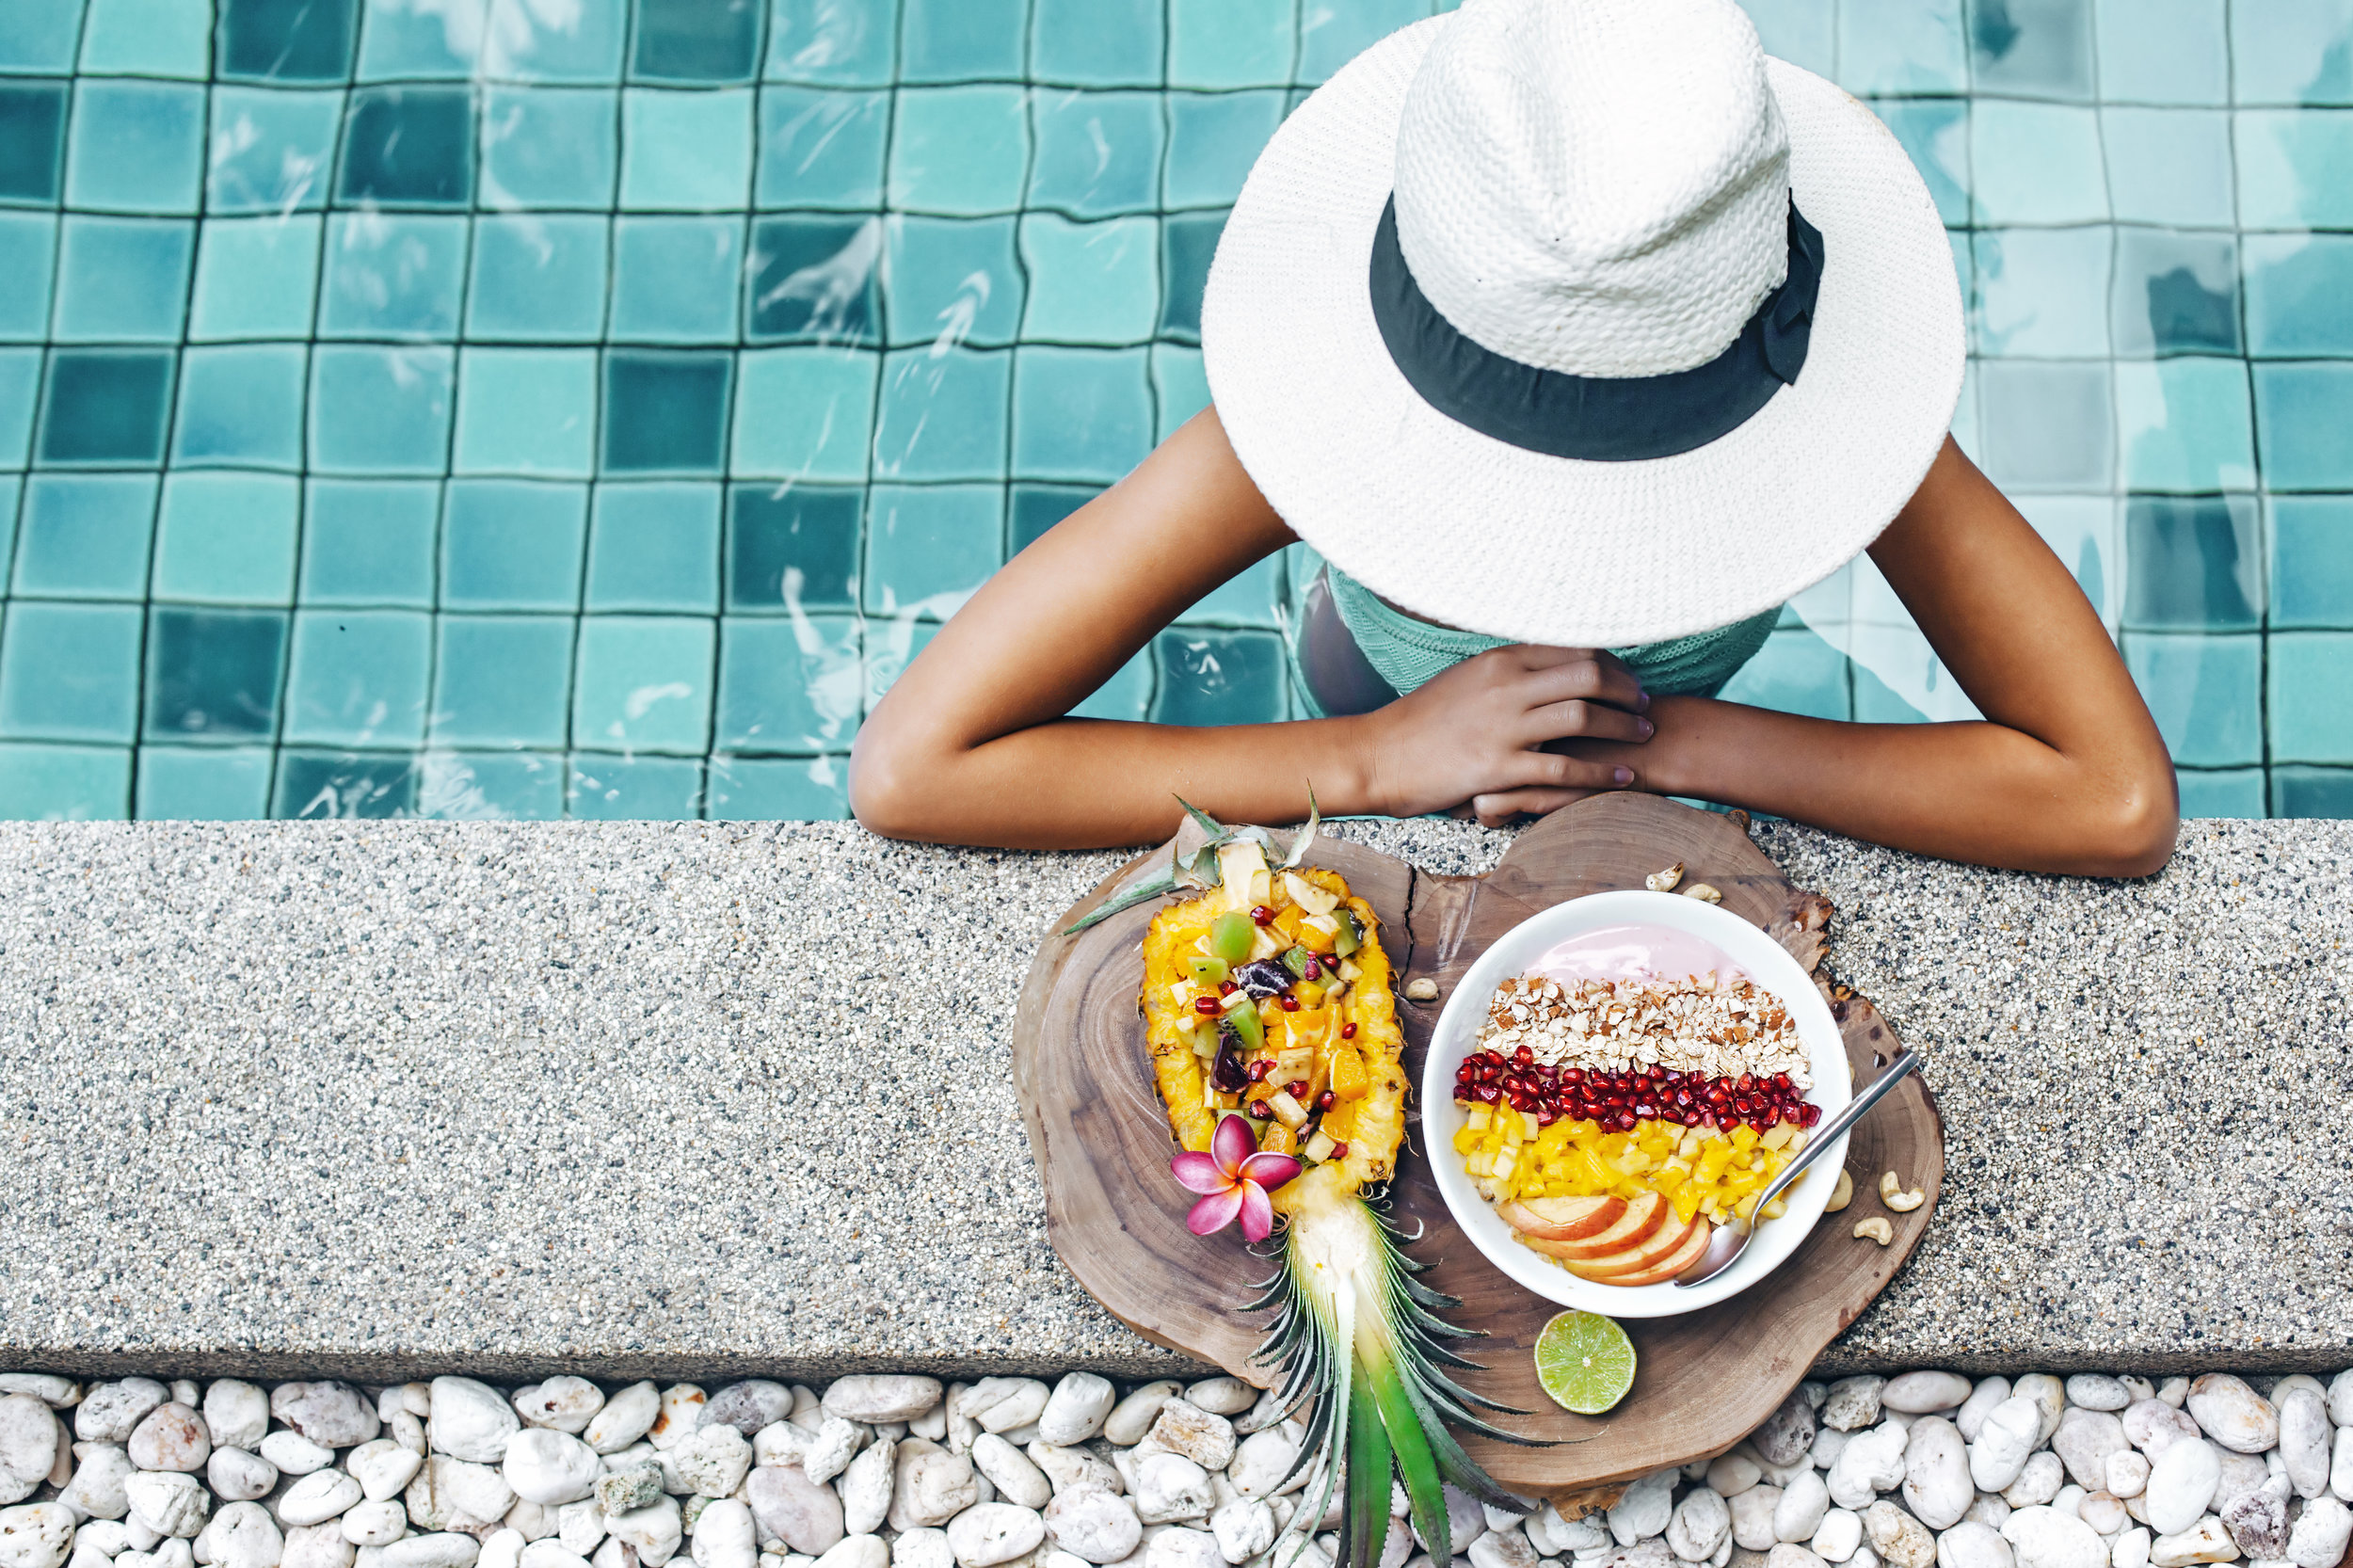 pineapple and woman by pool with white hat.jpeg